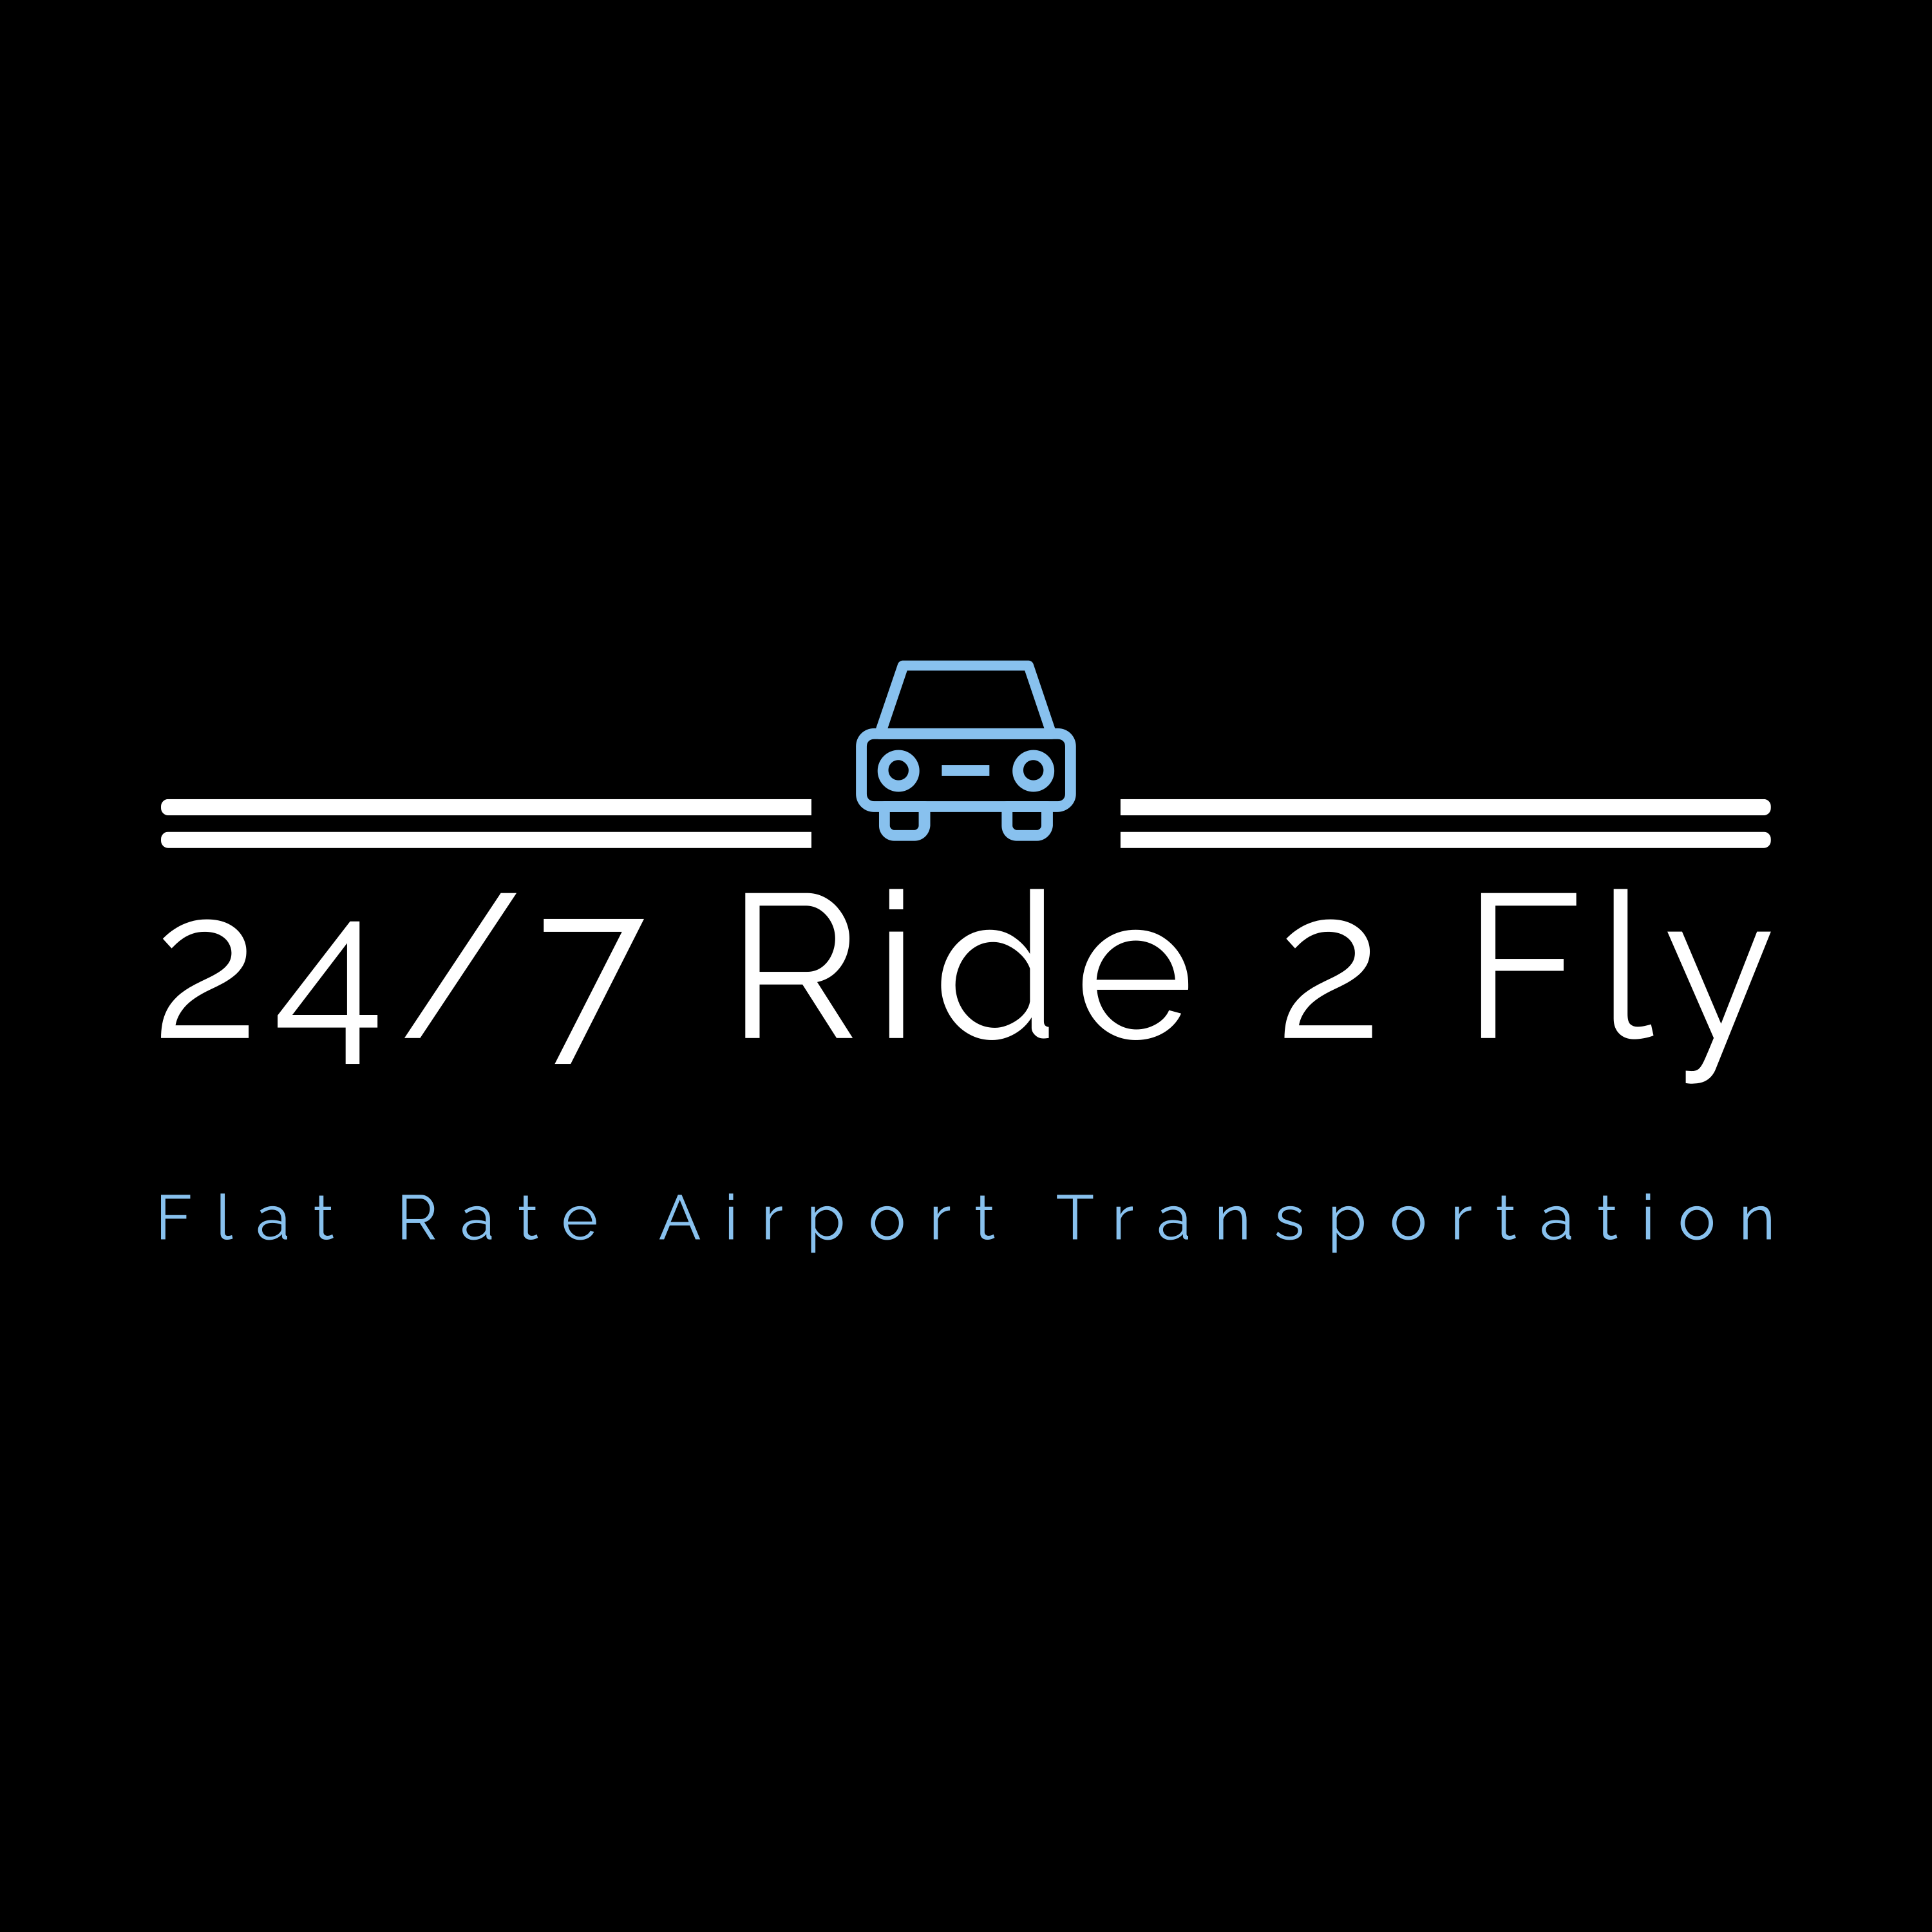 24/7 Ride 2 Fly